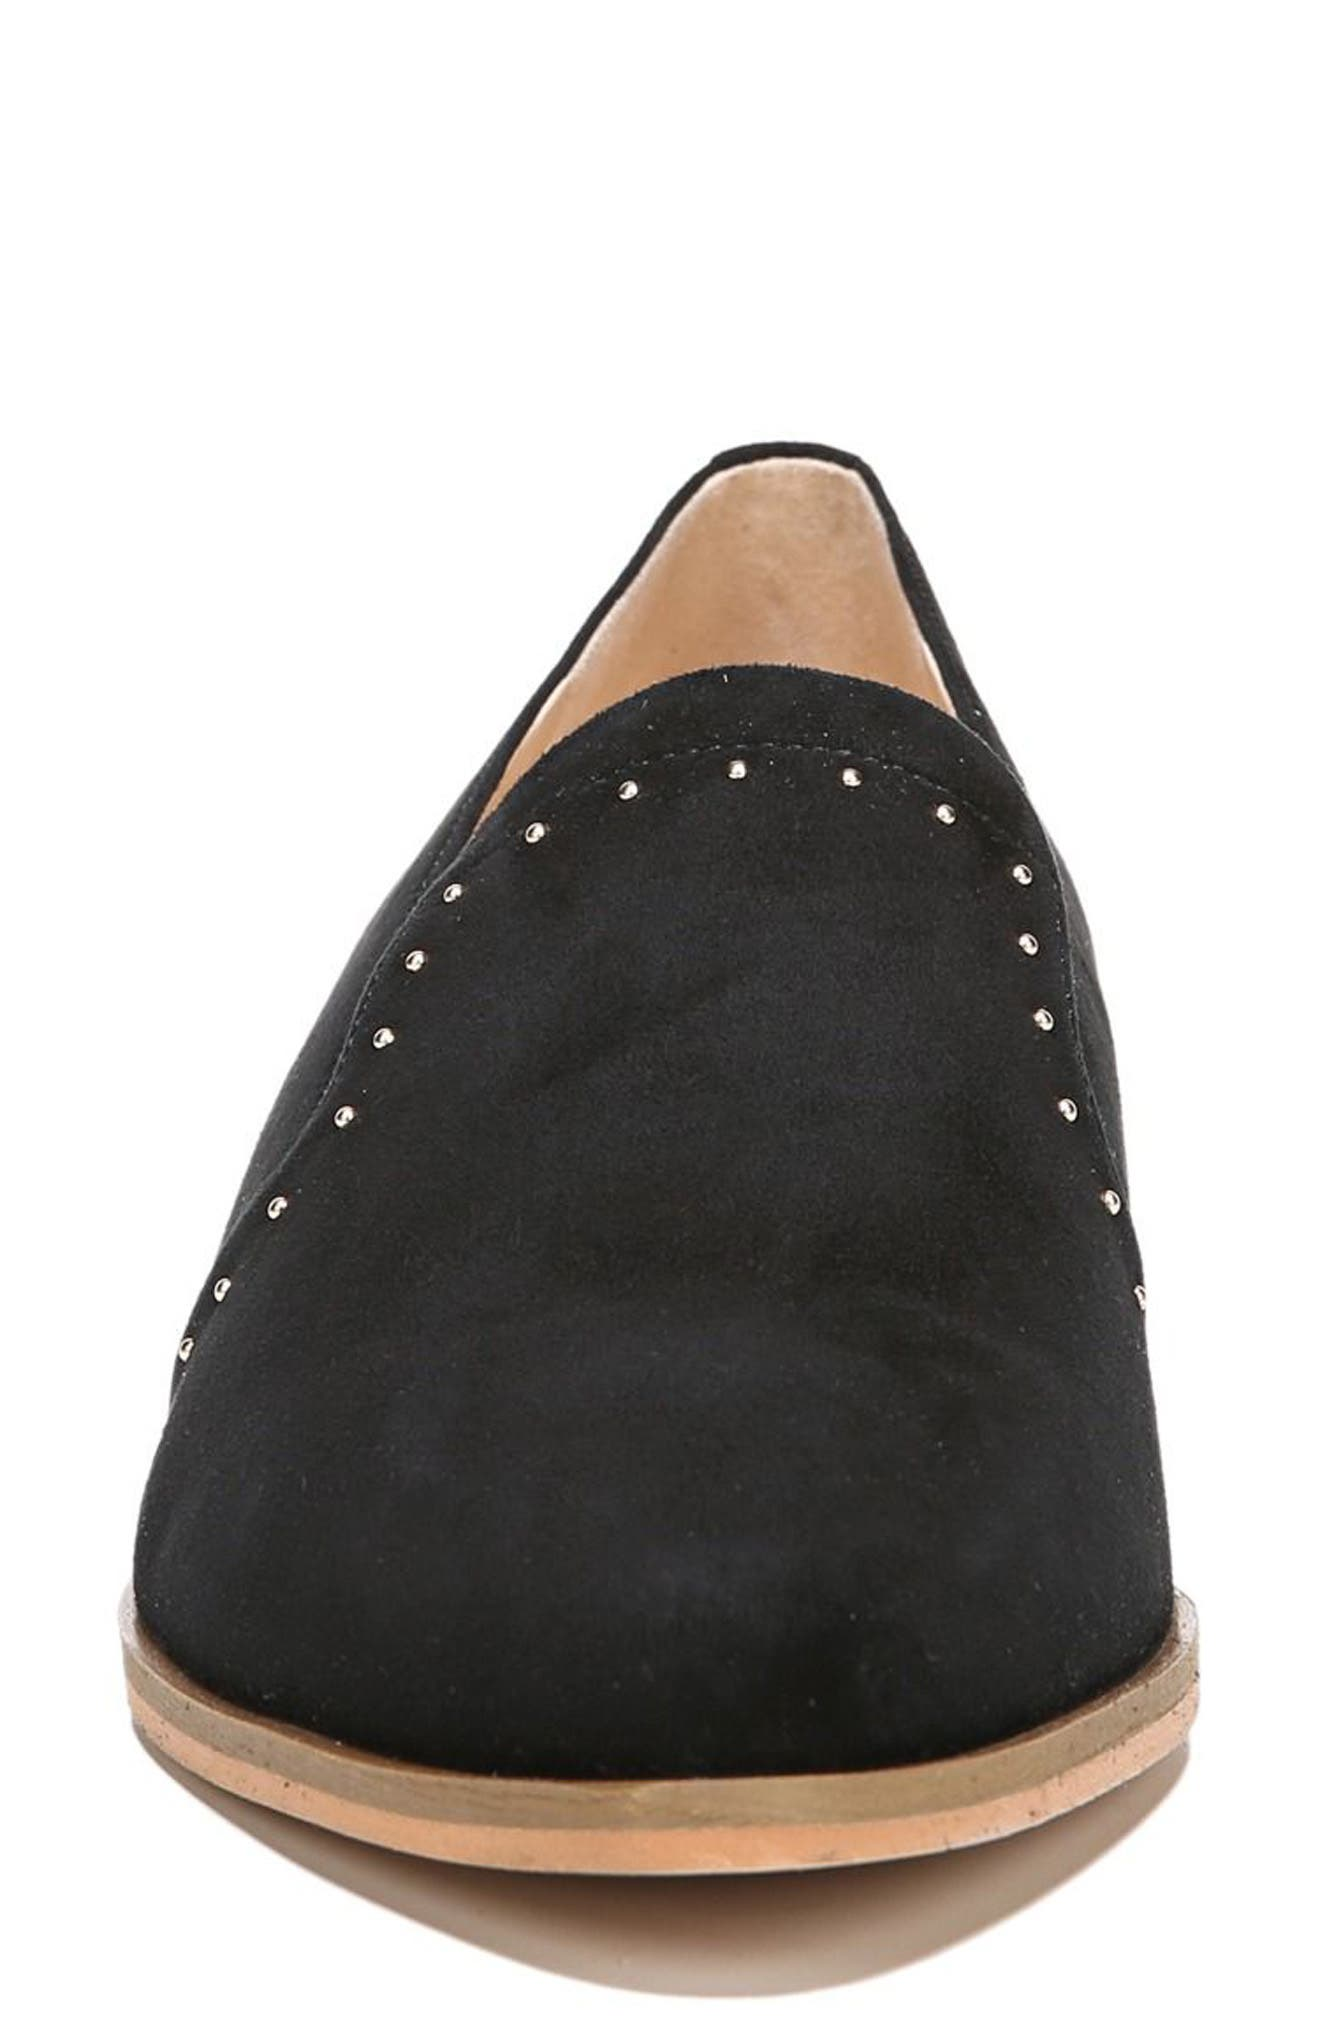 Keane Loafer Wedge,                             Alternate thumbnail 4, color,                             Black Suede